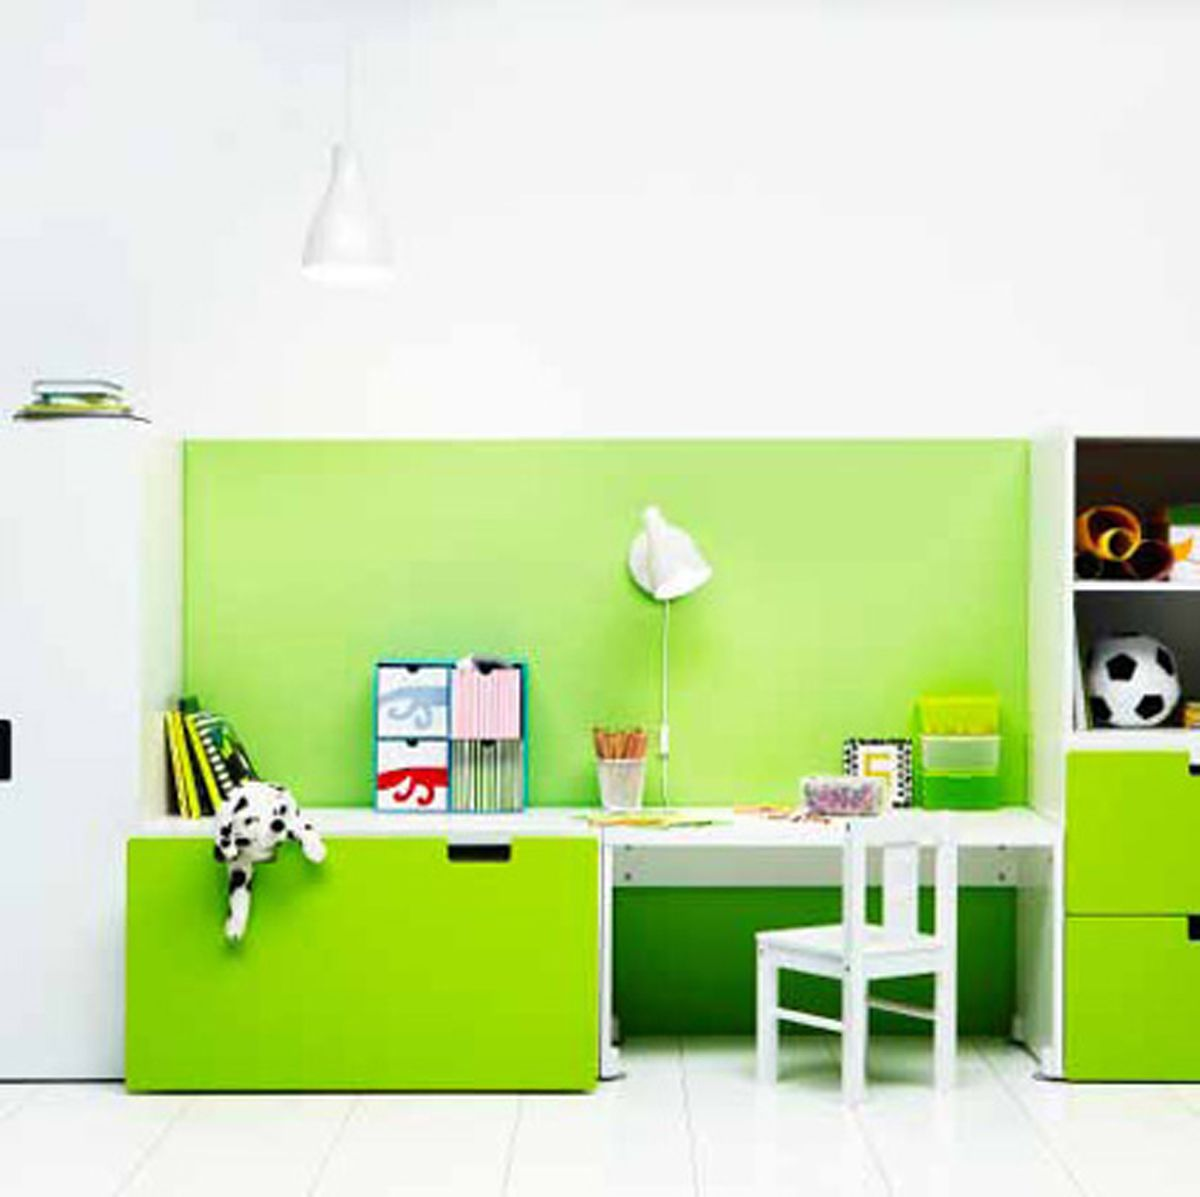 ikea kids bedroom furniture. Agreeable Green And White Kids Room Ideas Ikea Designs Minimalist With Desk Storage Design Along Countertop Plus Wooden Chair Also Bedroom Furniture T